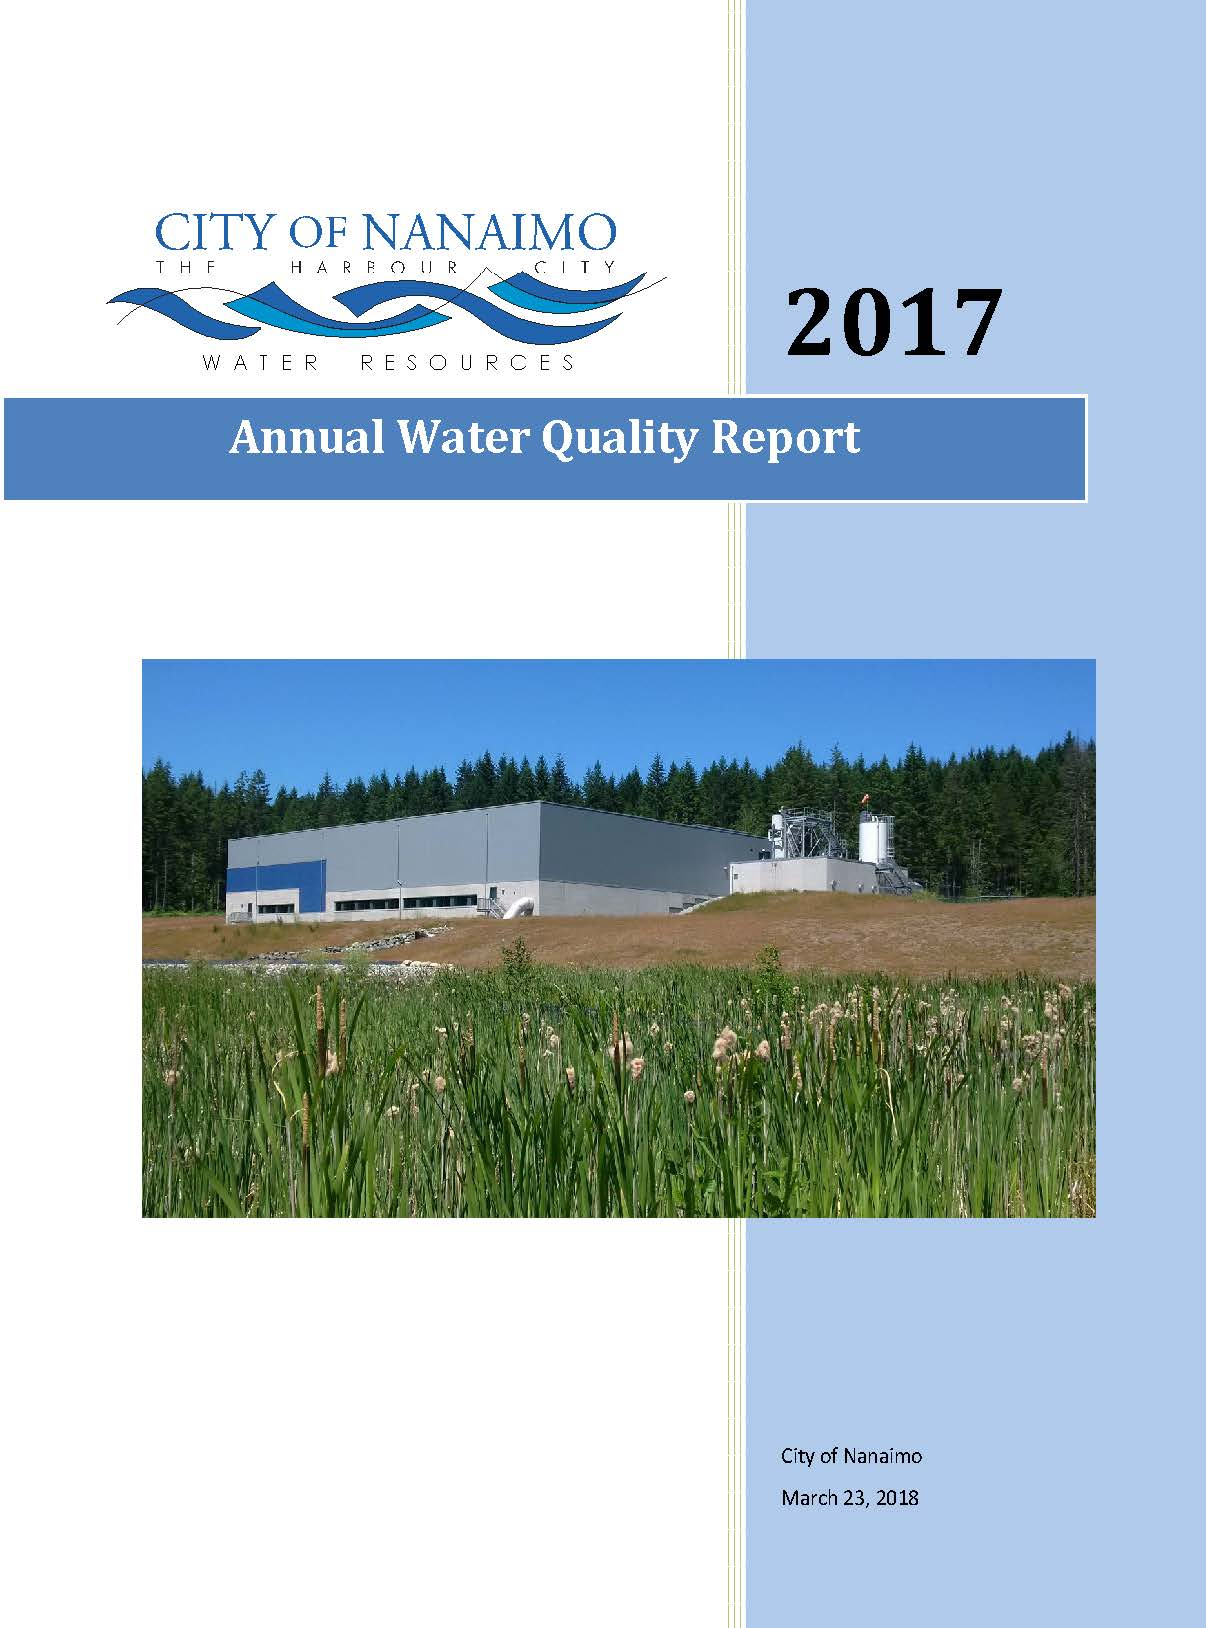 Annual Water Quality Report 2017 front page